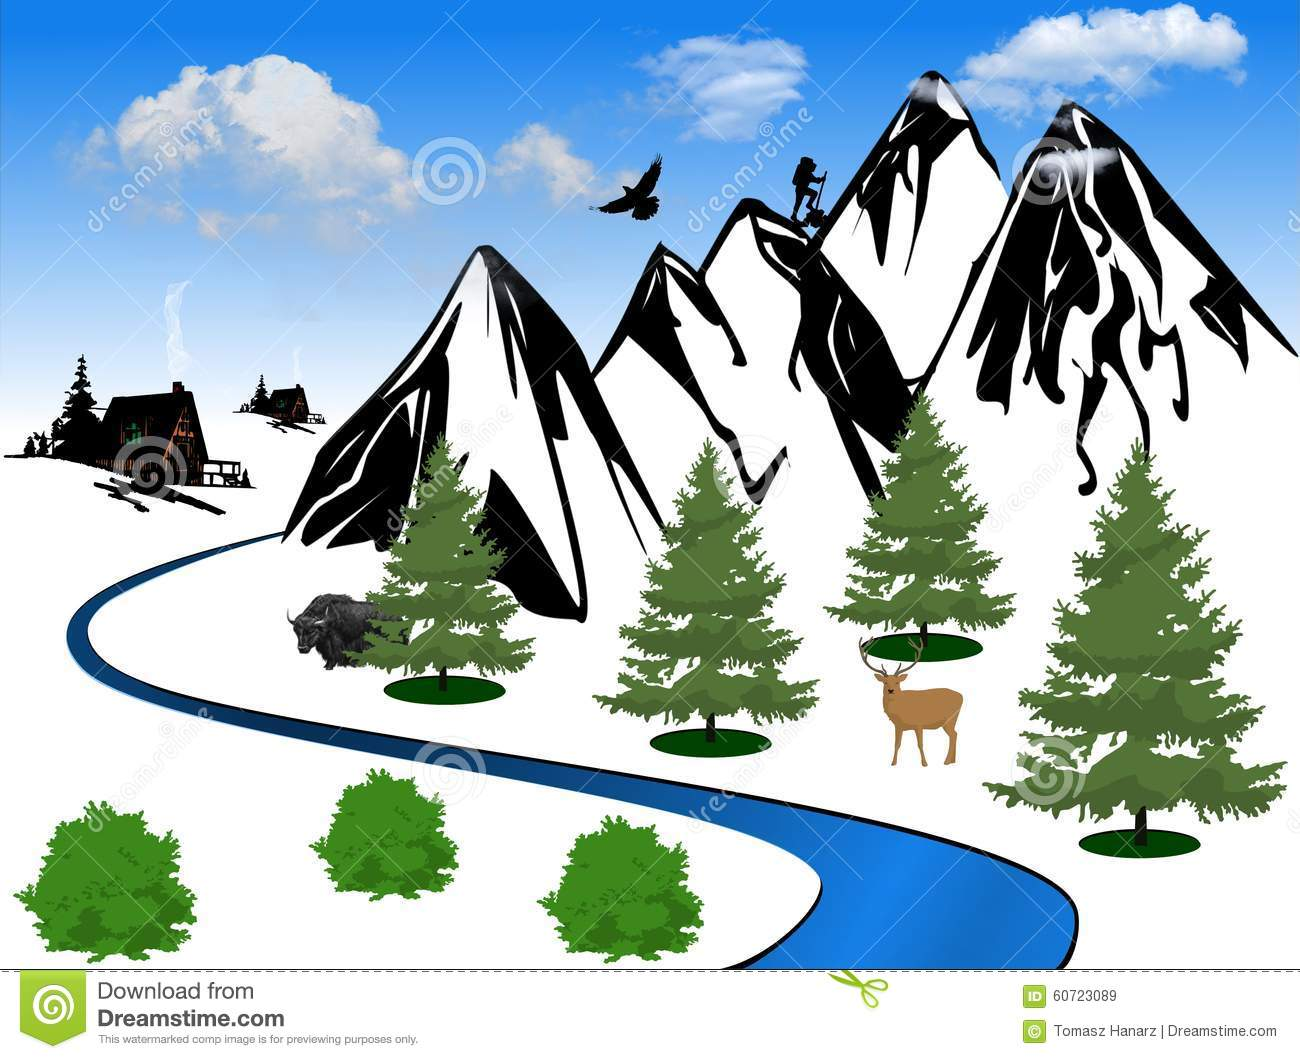 Valley Clip Art Image | Clipart Panda - Free Clipart Images